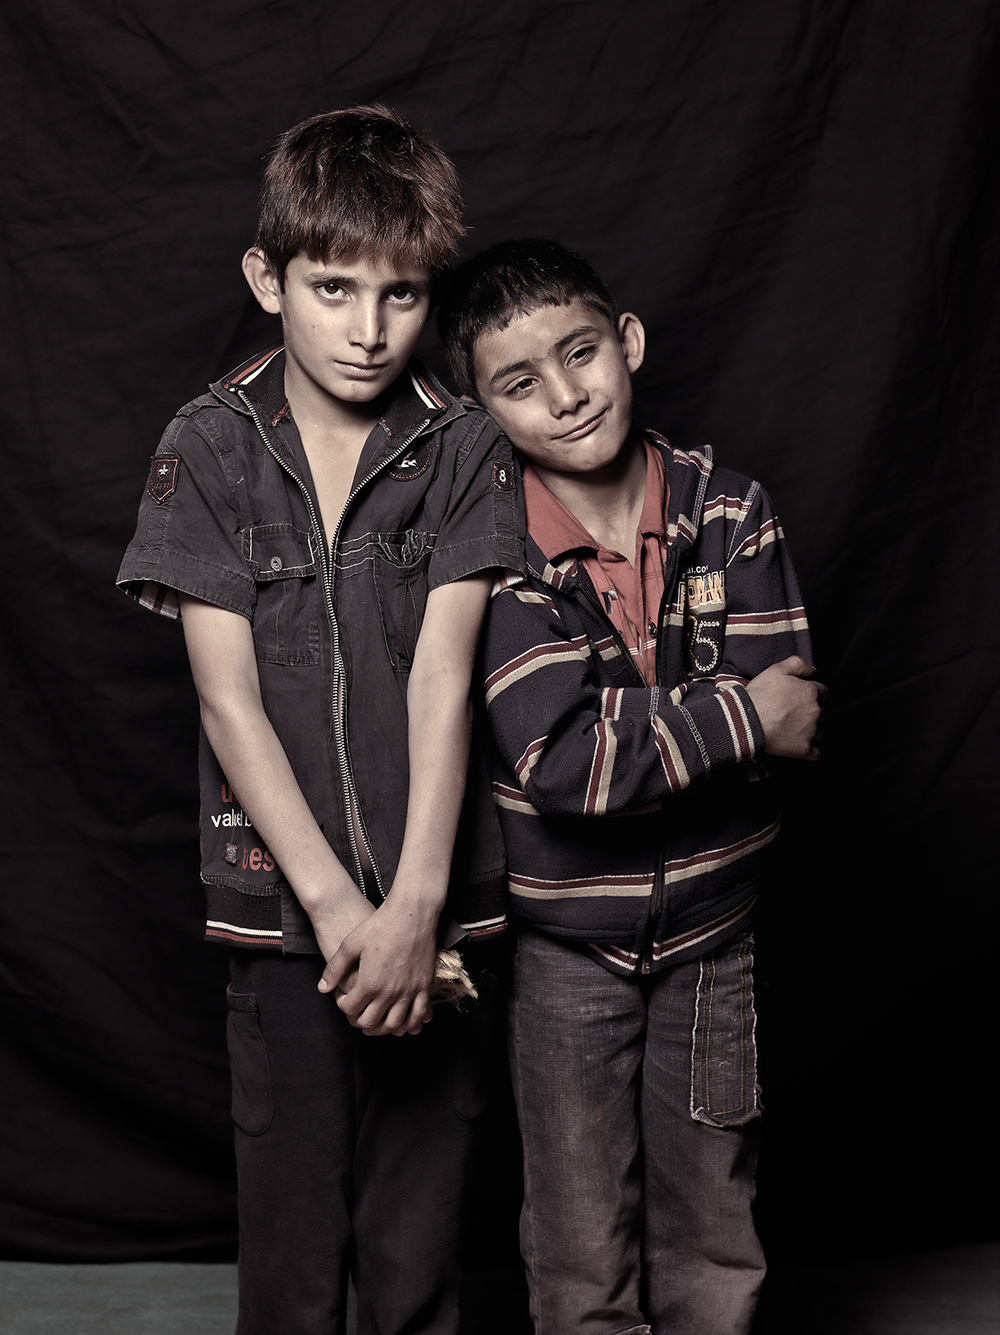 Akif Ahmed, 6 and Aubad Ahmed, 5, D-camp, 2013